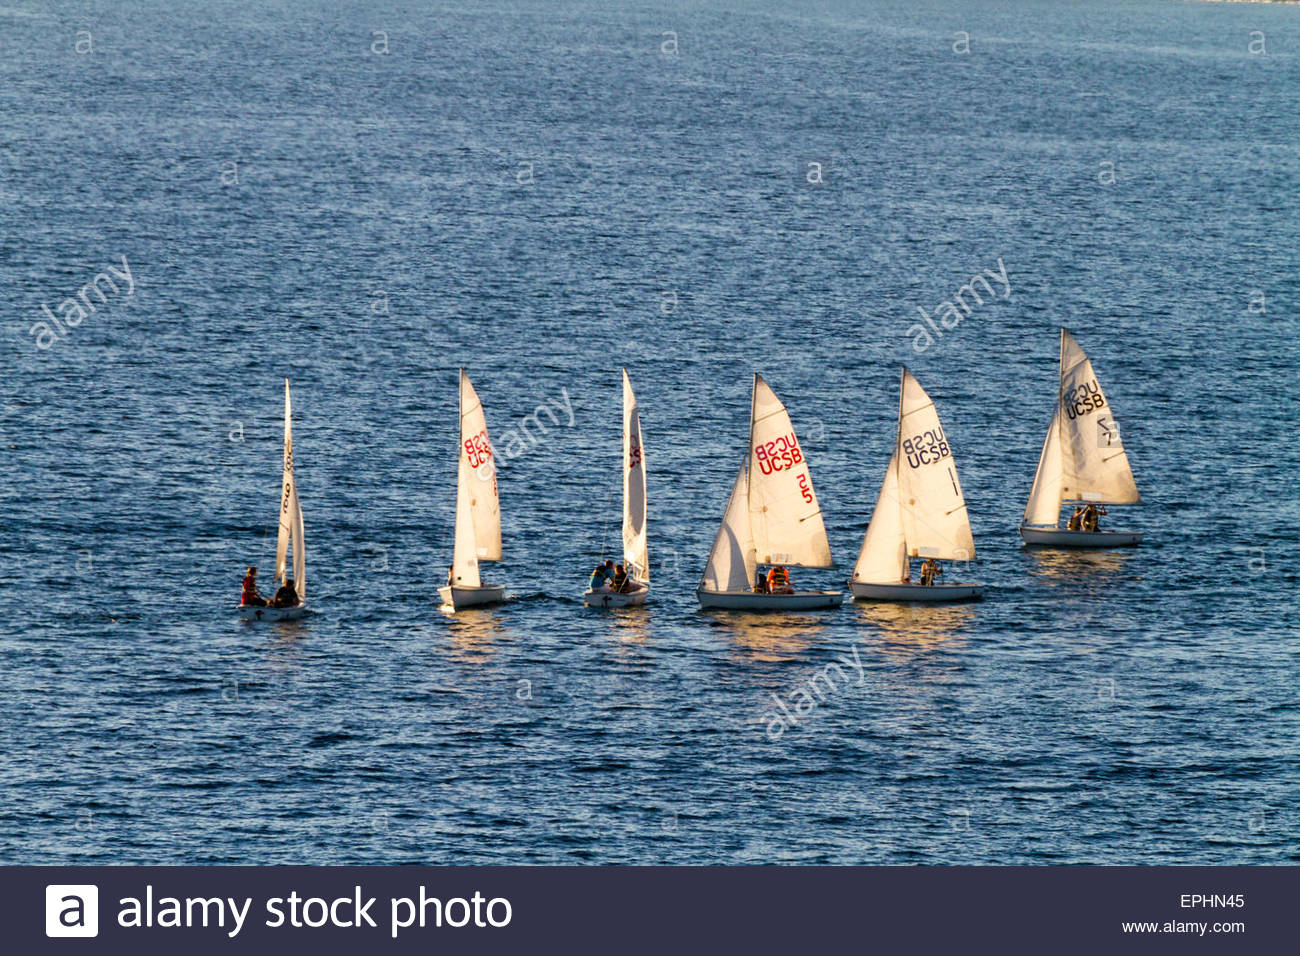 Sailboats compete on the Pacific Ocean off the coast of Santa Barbara, California - Stock Image